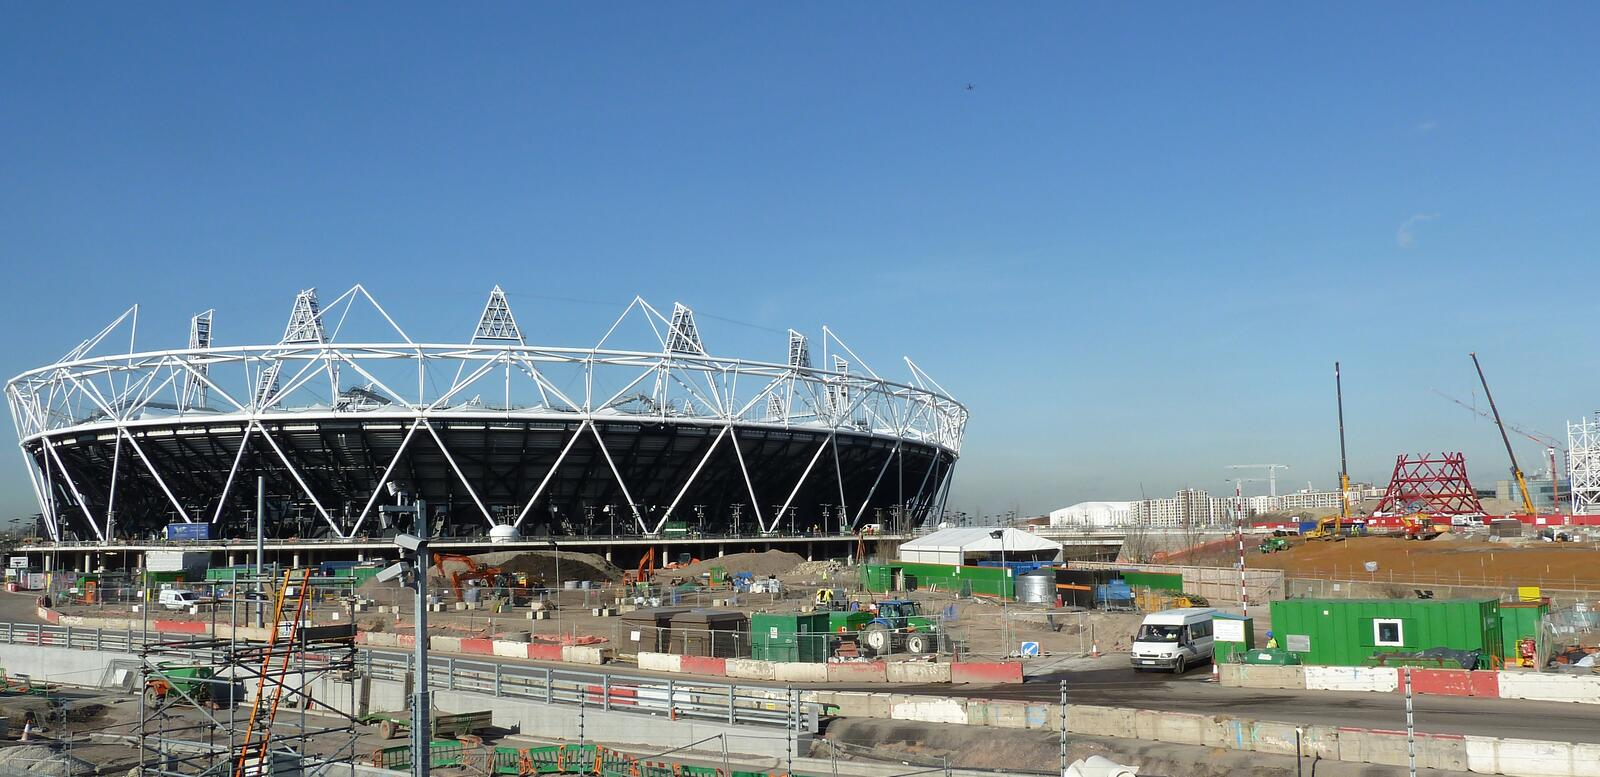 Download Olympic Stadium And Anish Kapoor's |Orbit Tower Editorial Stock Photo - Image: 18337778